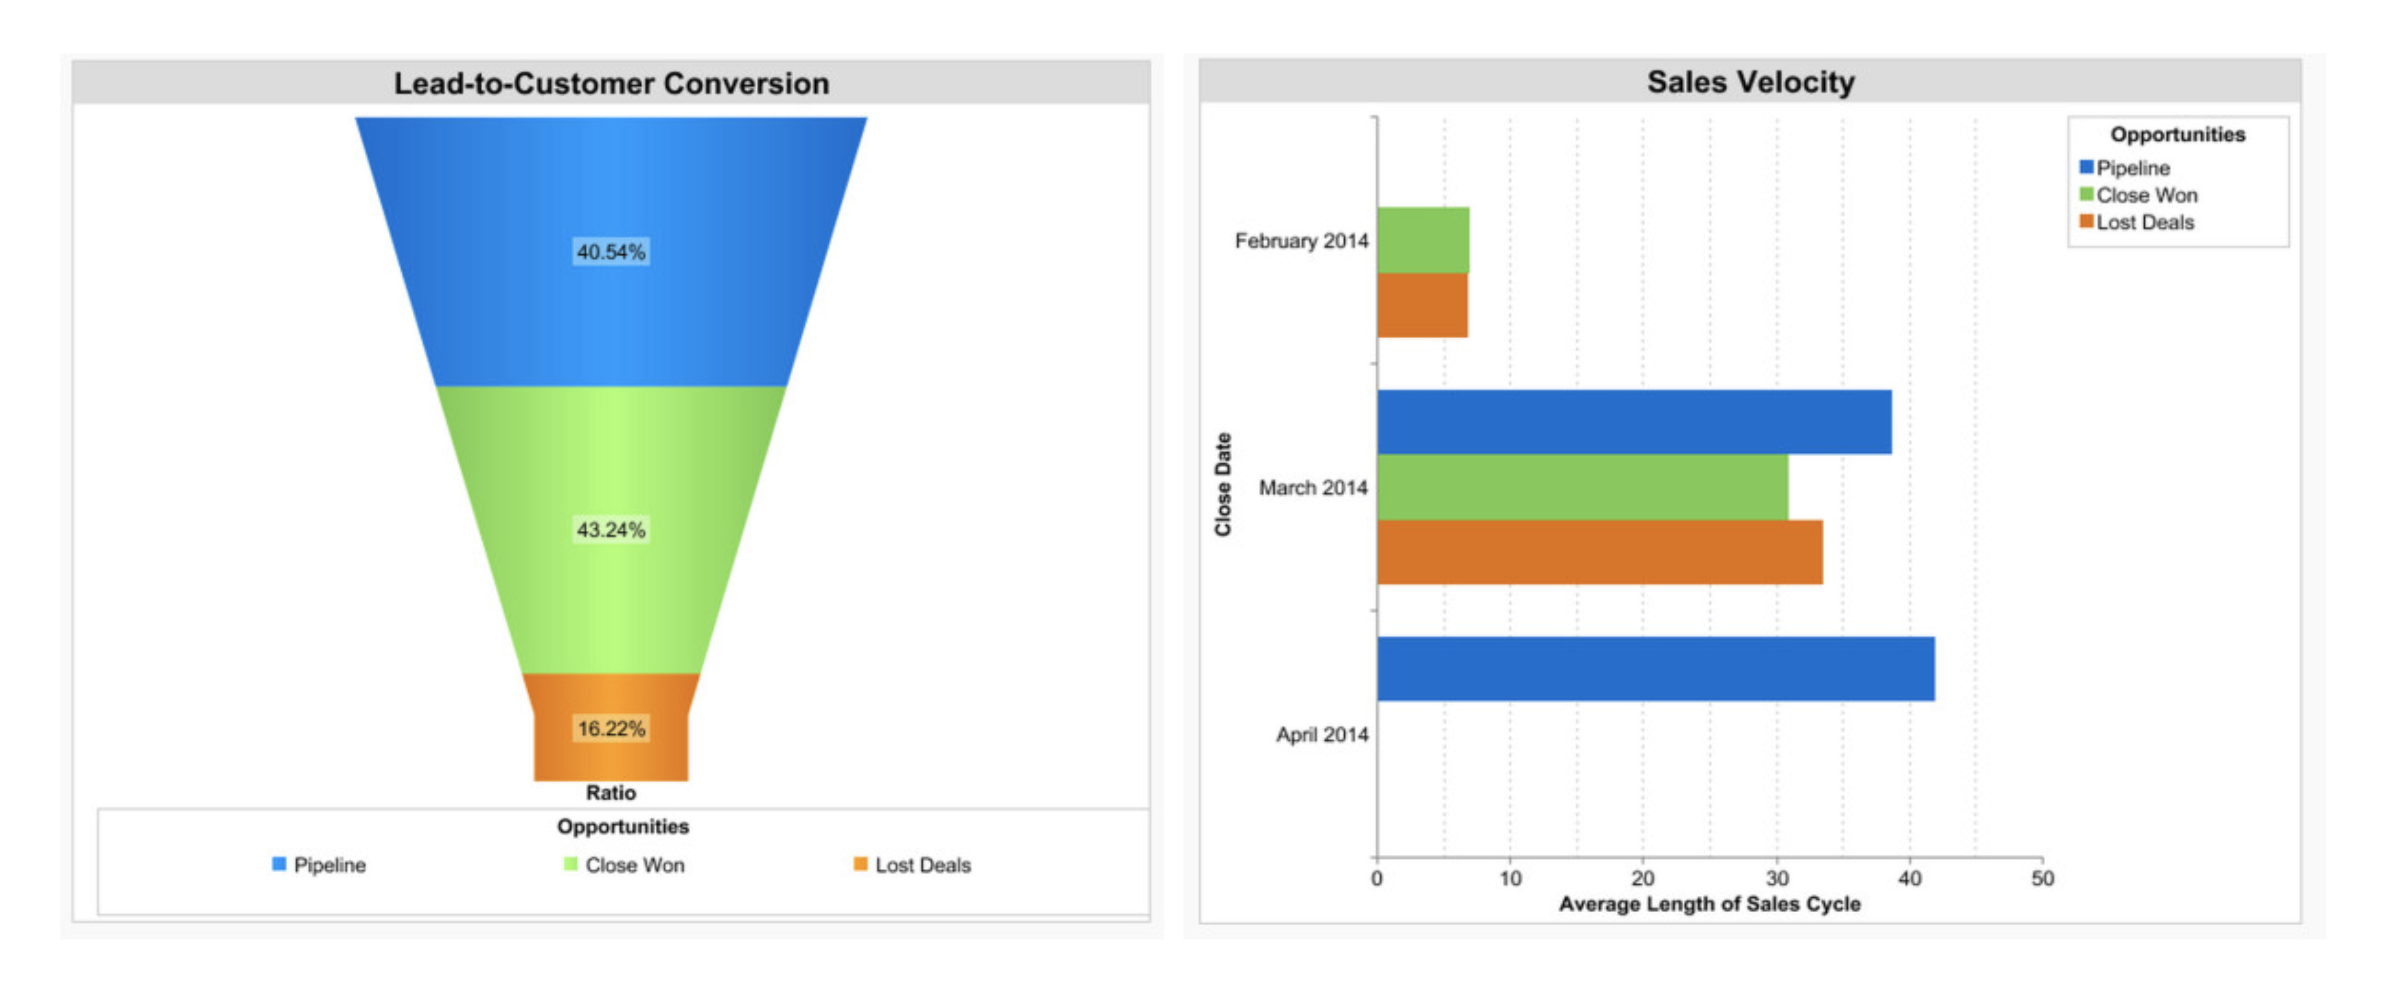 To plan your next sales quarter, measure your sales metrics and create charts to visualize the data to the team.